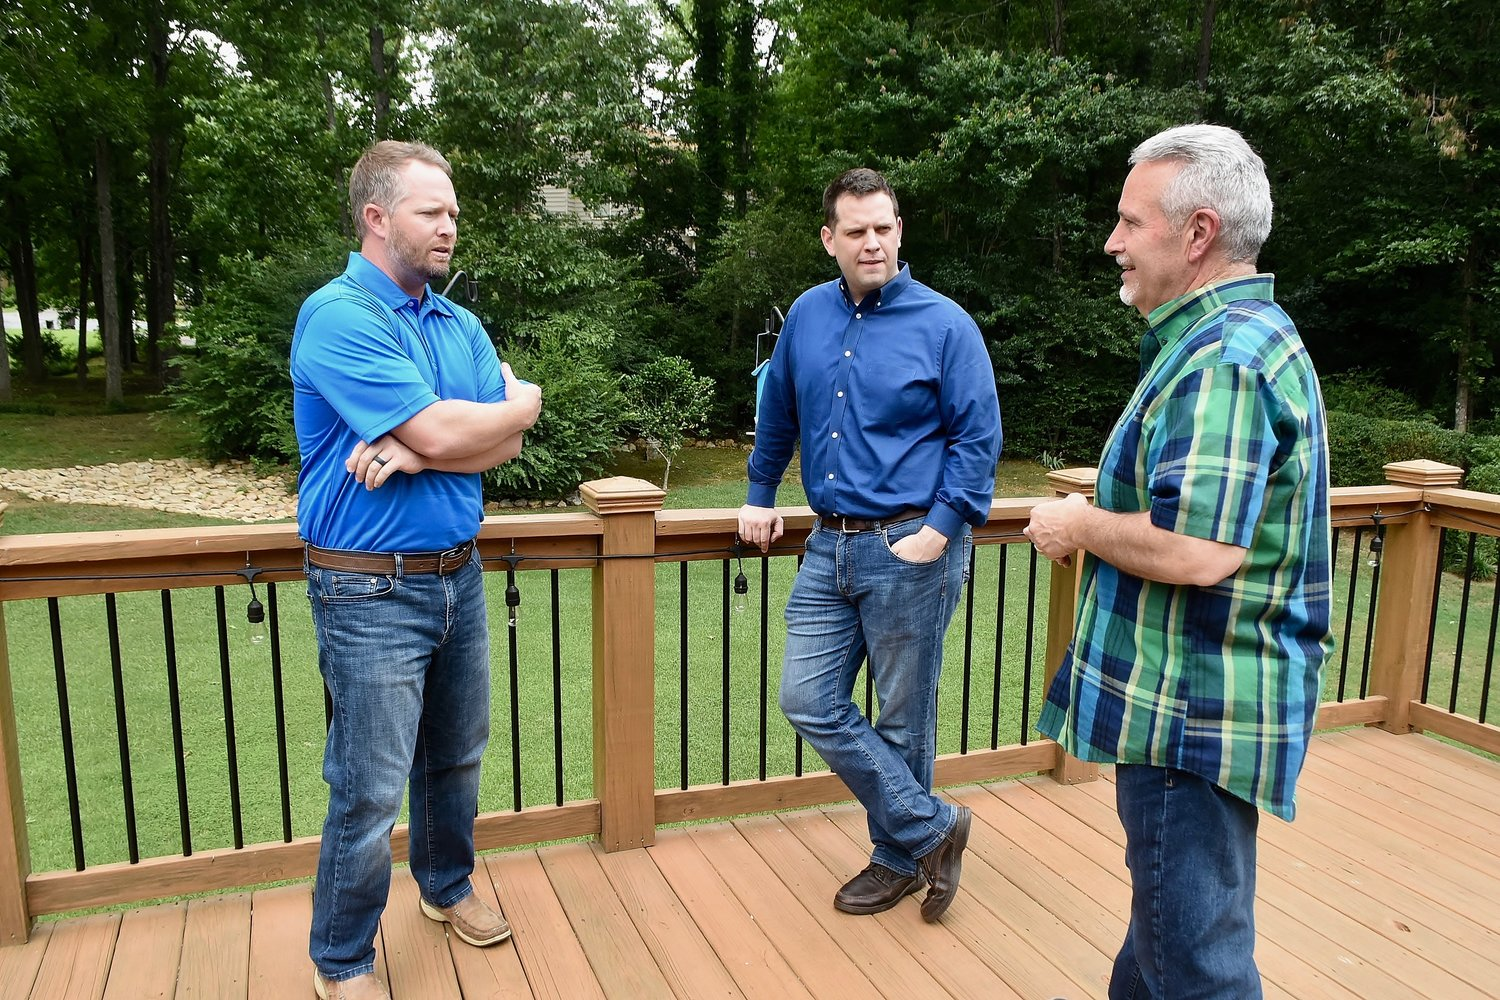 Don Startup, right, on the deck of his Cartersville home, with his sons Drew, left, and Nick. Startup's third son, Will, lives in Cumming and works in Norcross.